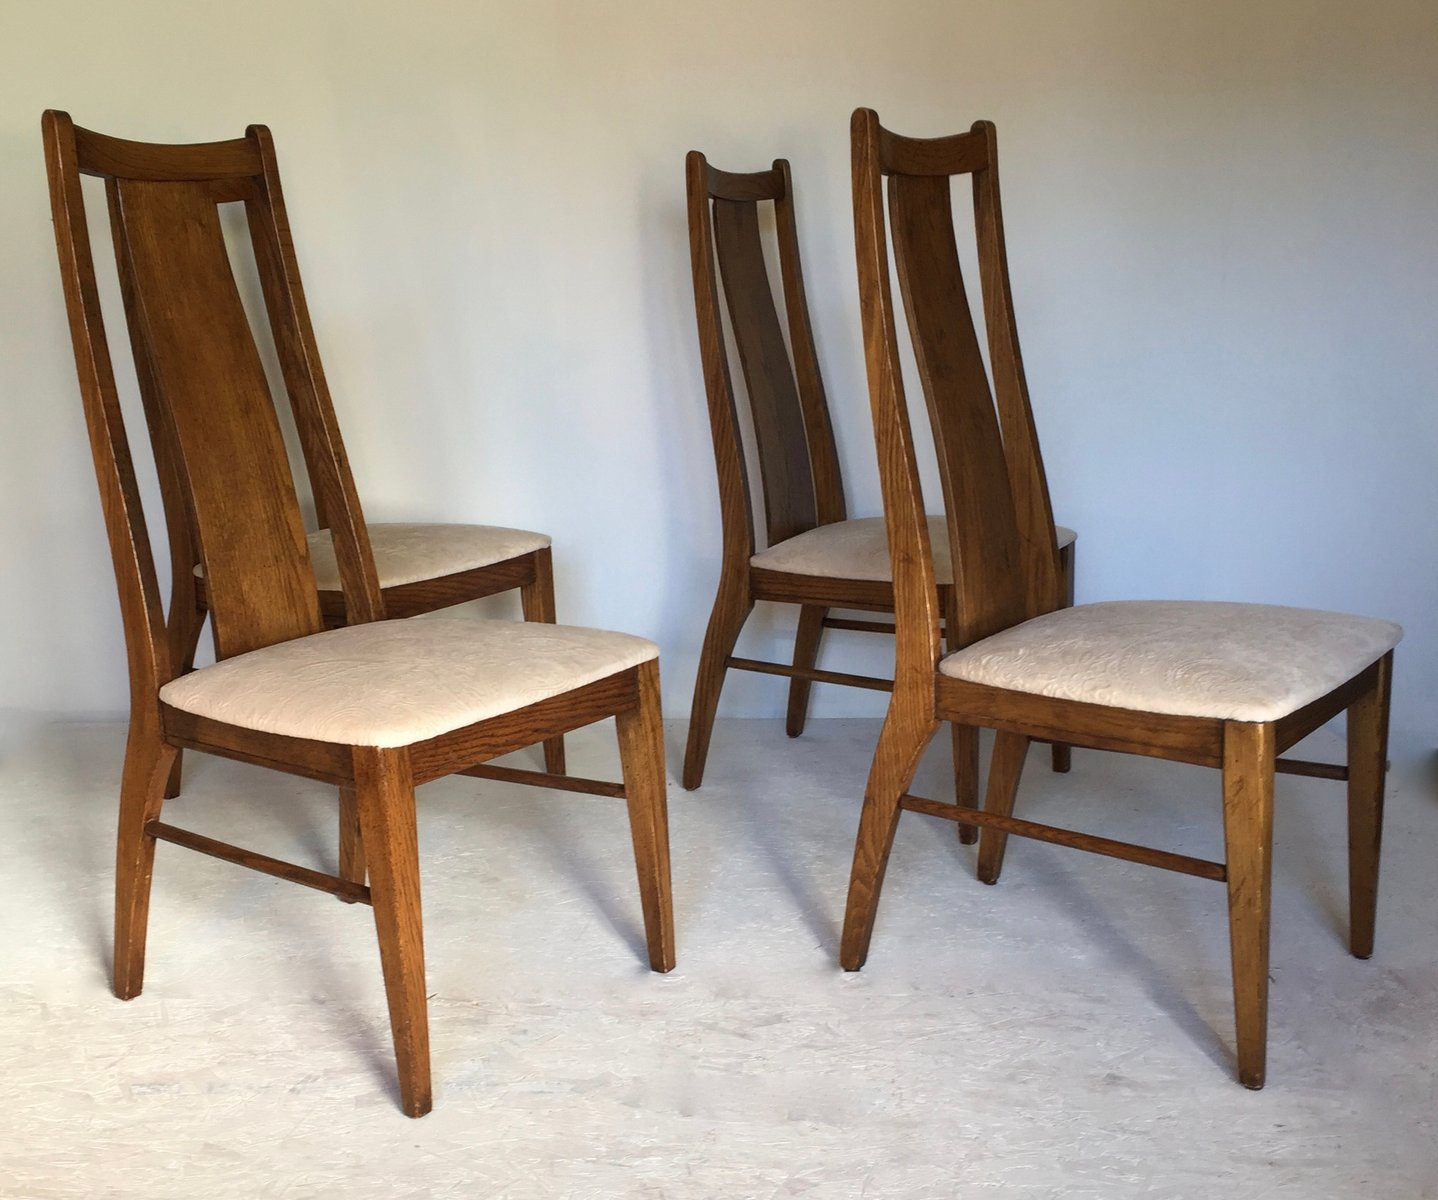 American Chairs From Garrison Furniture Company, 1960s, Set Of 4